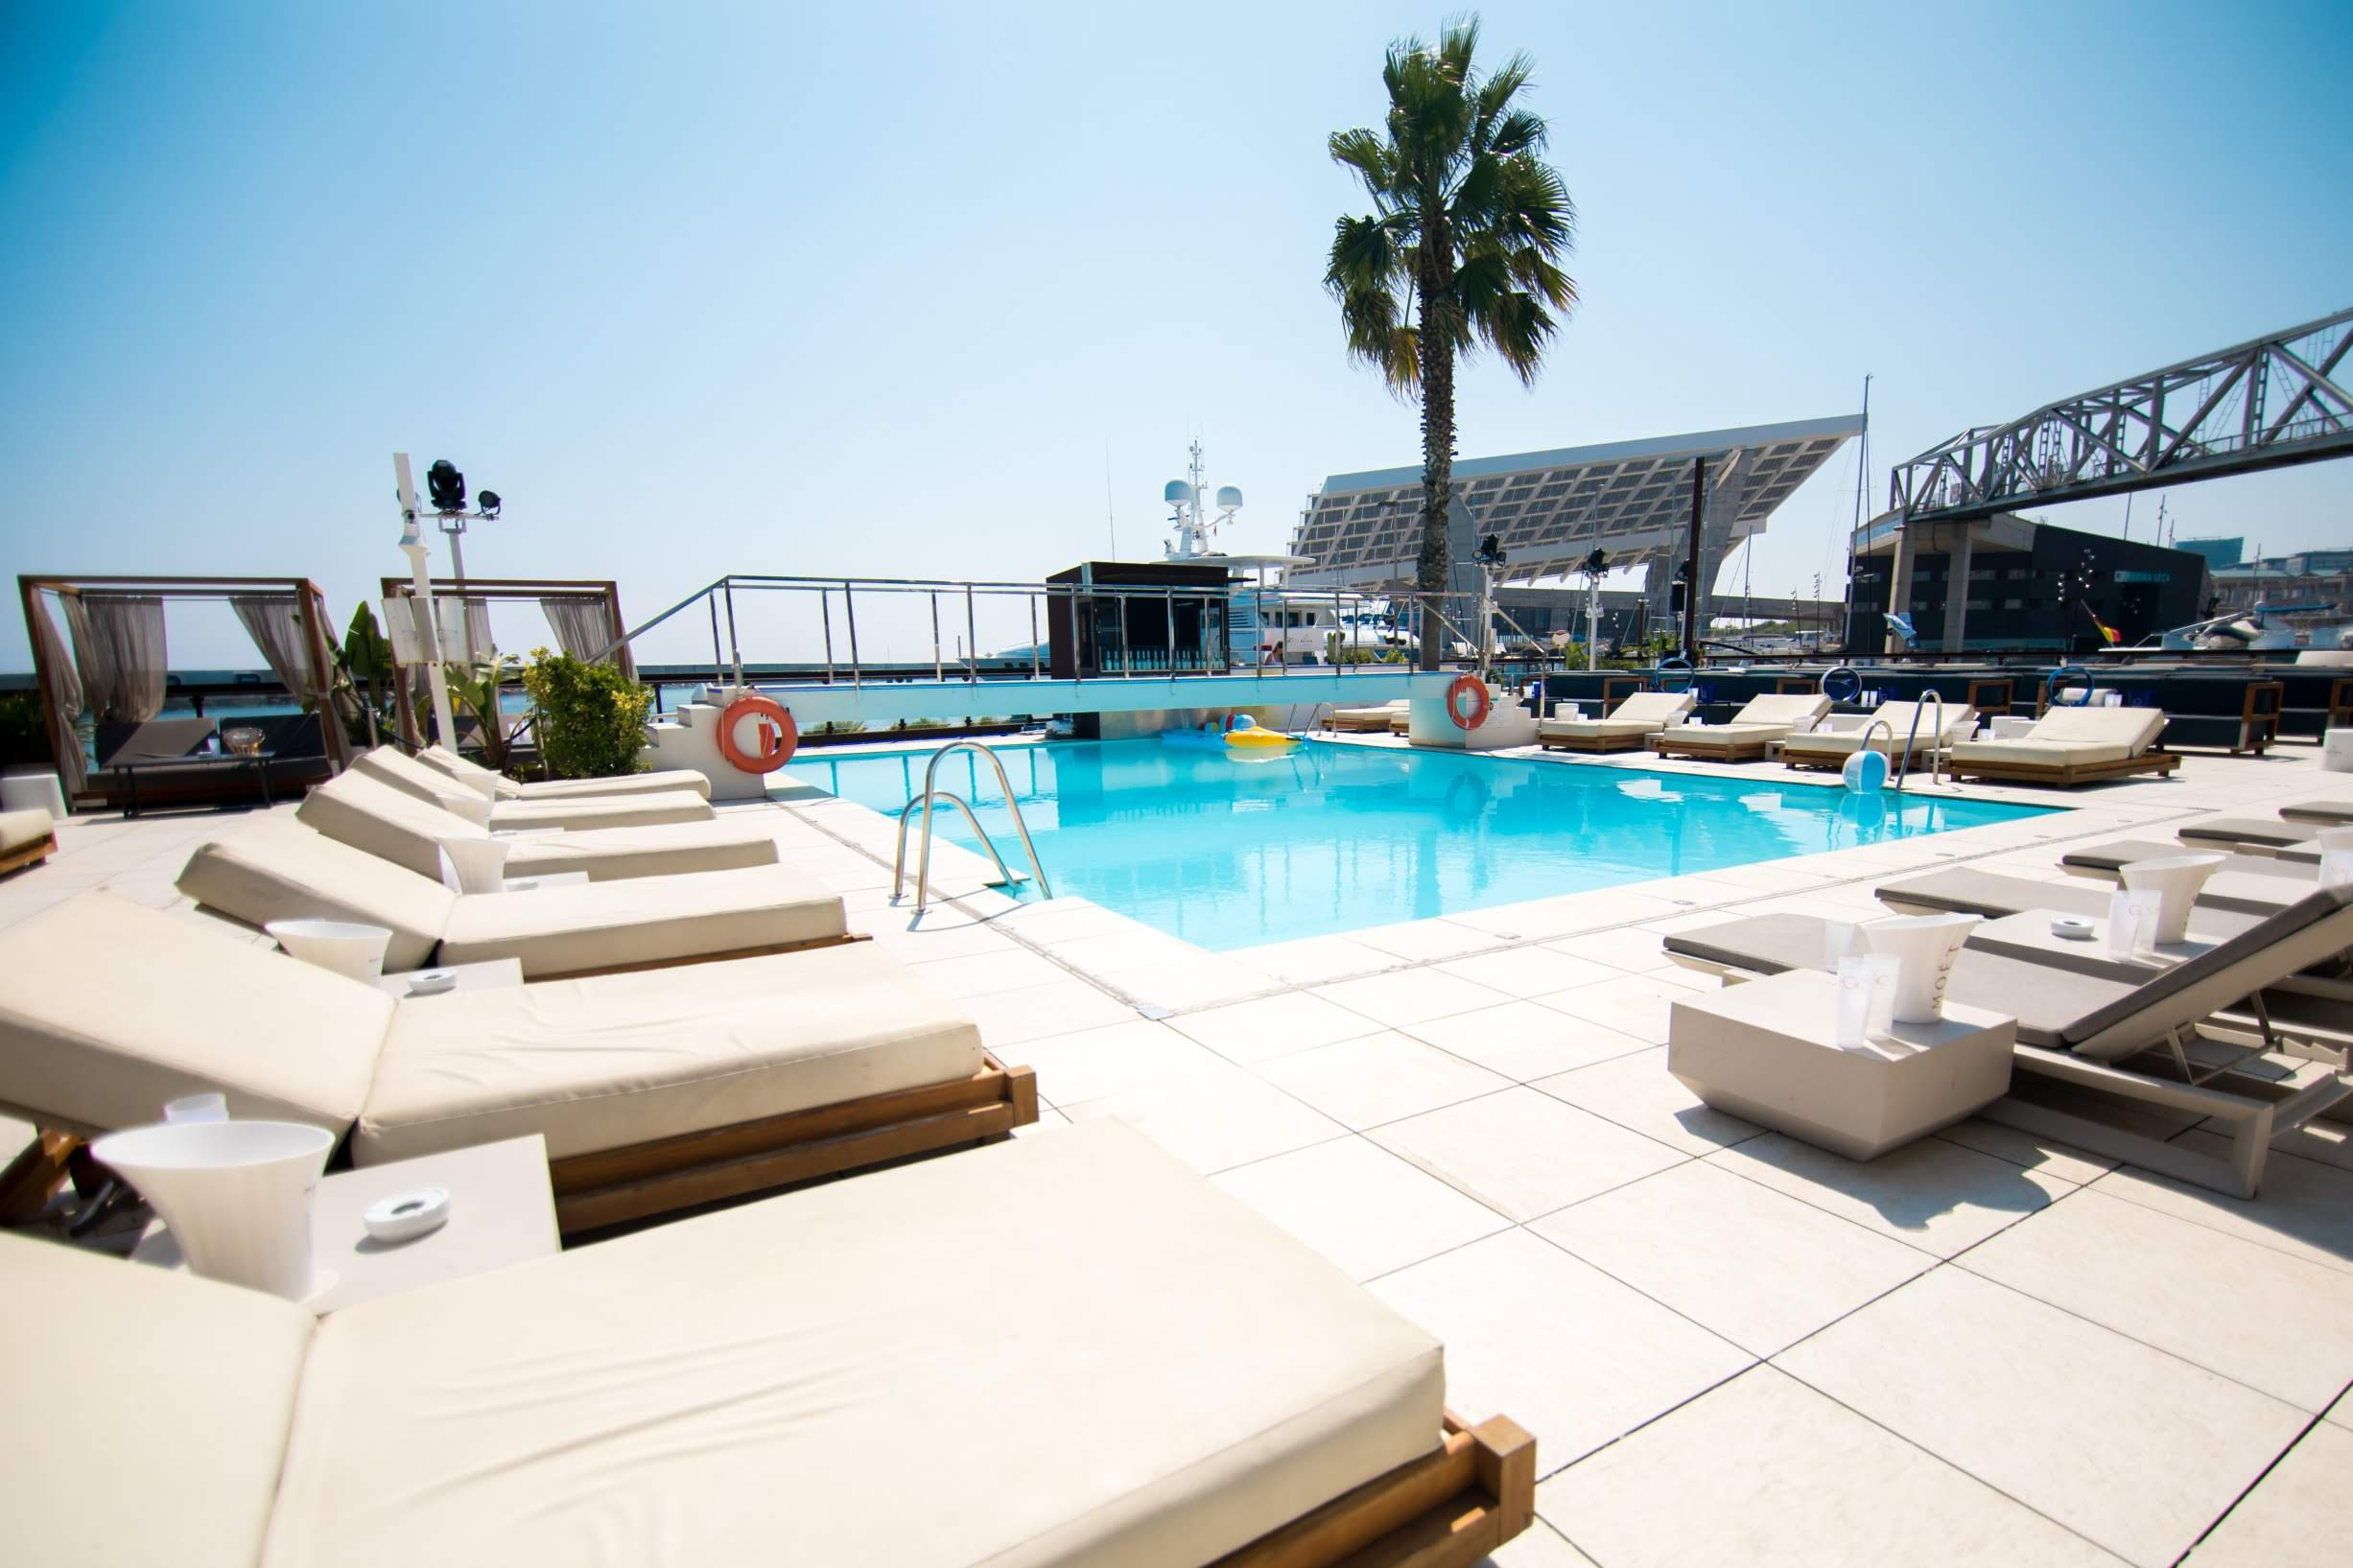 SOFAS @ PISCINA GO BEACH CLUB  GO BEACH CLUB BARCELONA POOL